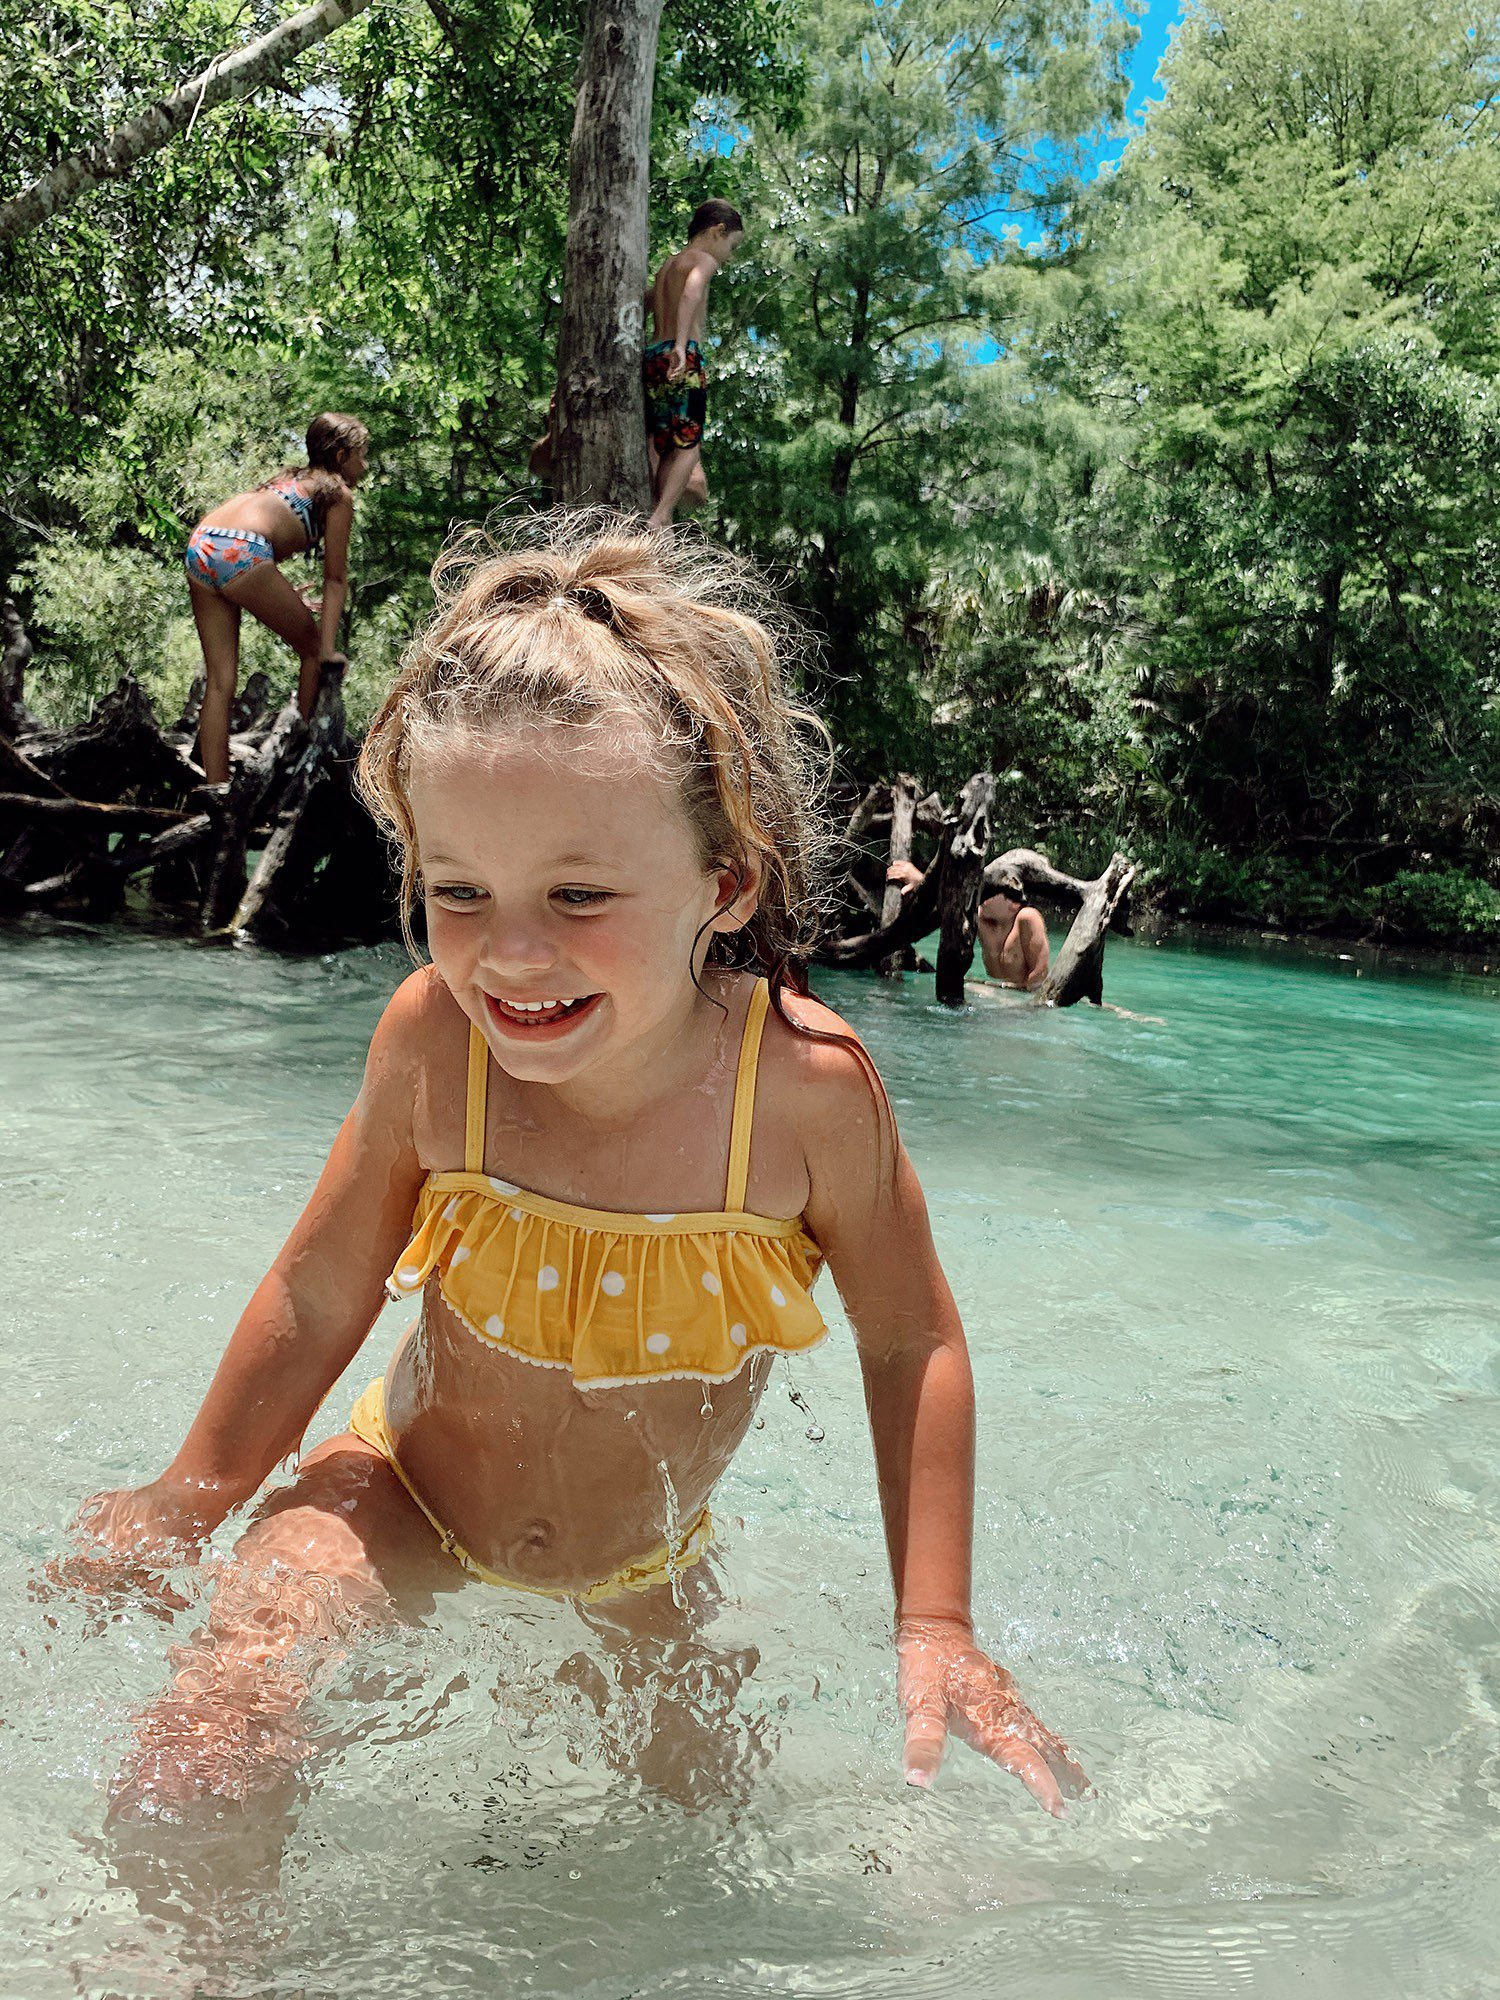 Tips for an Amazing Weeki Wachee Kayaking Florida Staycation. Visit Florida Travel ideas from top lifestyle blogger Tabitha Blue of Fresh Mommy Blog.   Weeki Wachee Kayaking by popular Florida blog, Fresh Mommy Blog: image of a little girl wearing a yellow and white polka dot bikini and playing in the water.